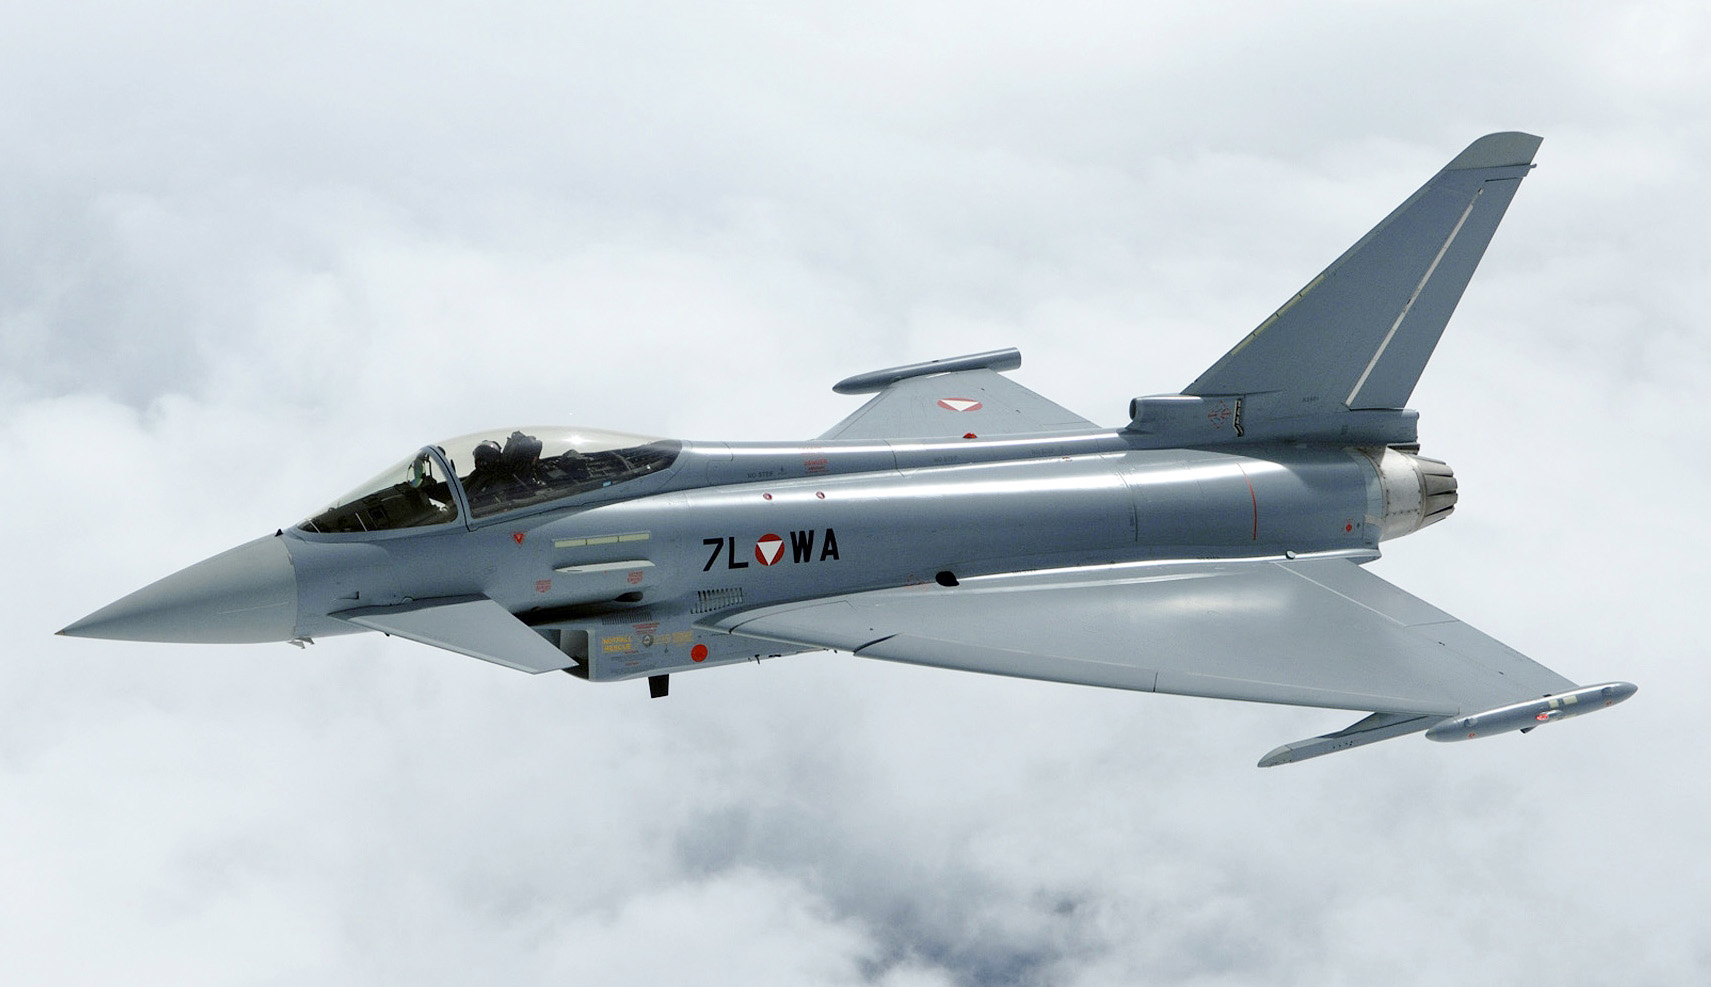 File:Eurofighter Typhoon AUT.jpg - Wikimedia Commons